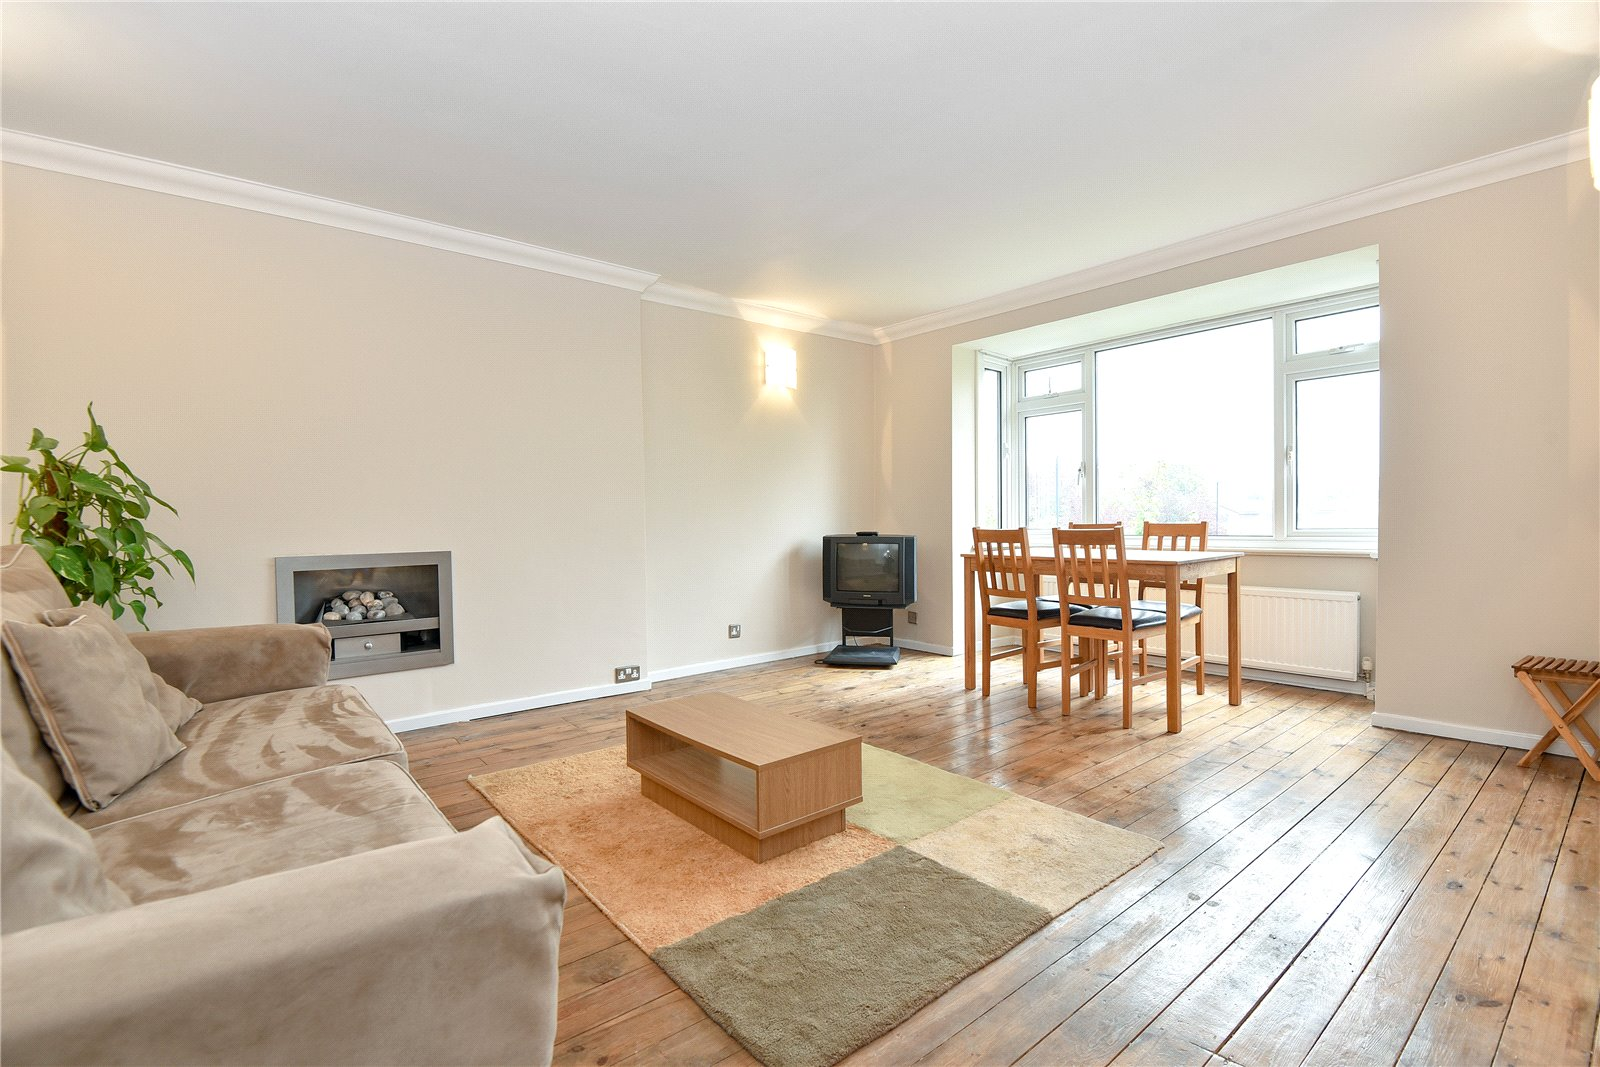 2 Bedrooms Maisonette Flat for sale in Sandringham Road, Maidenhead, Berkshire, SL6